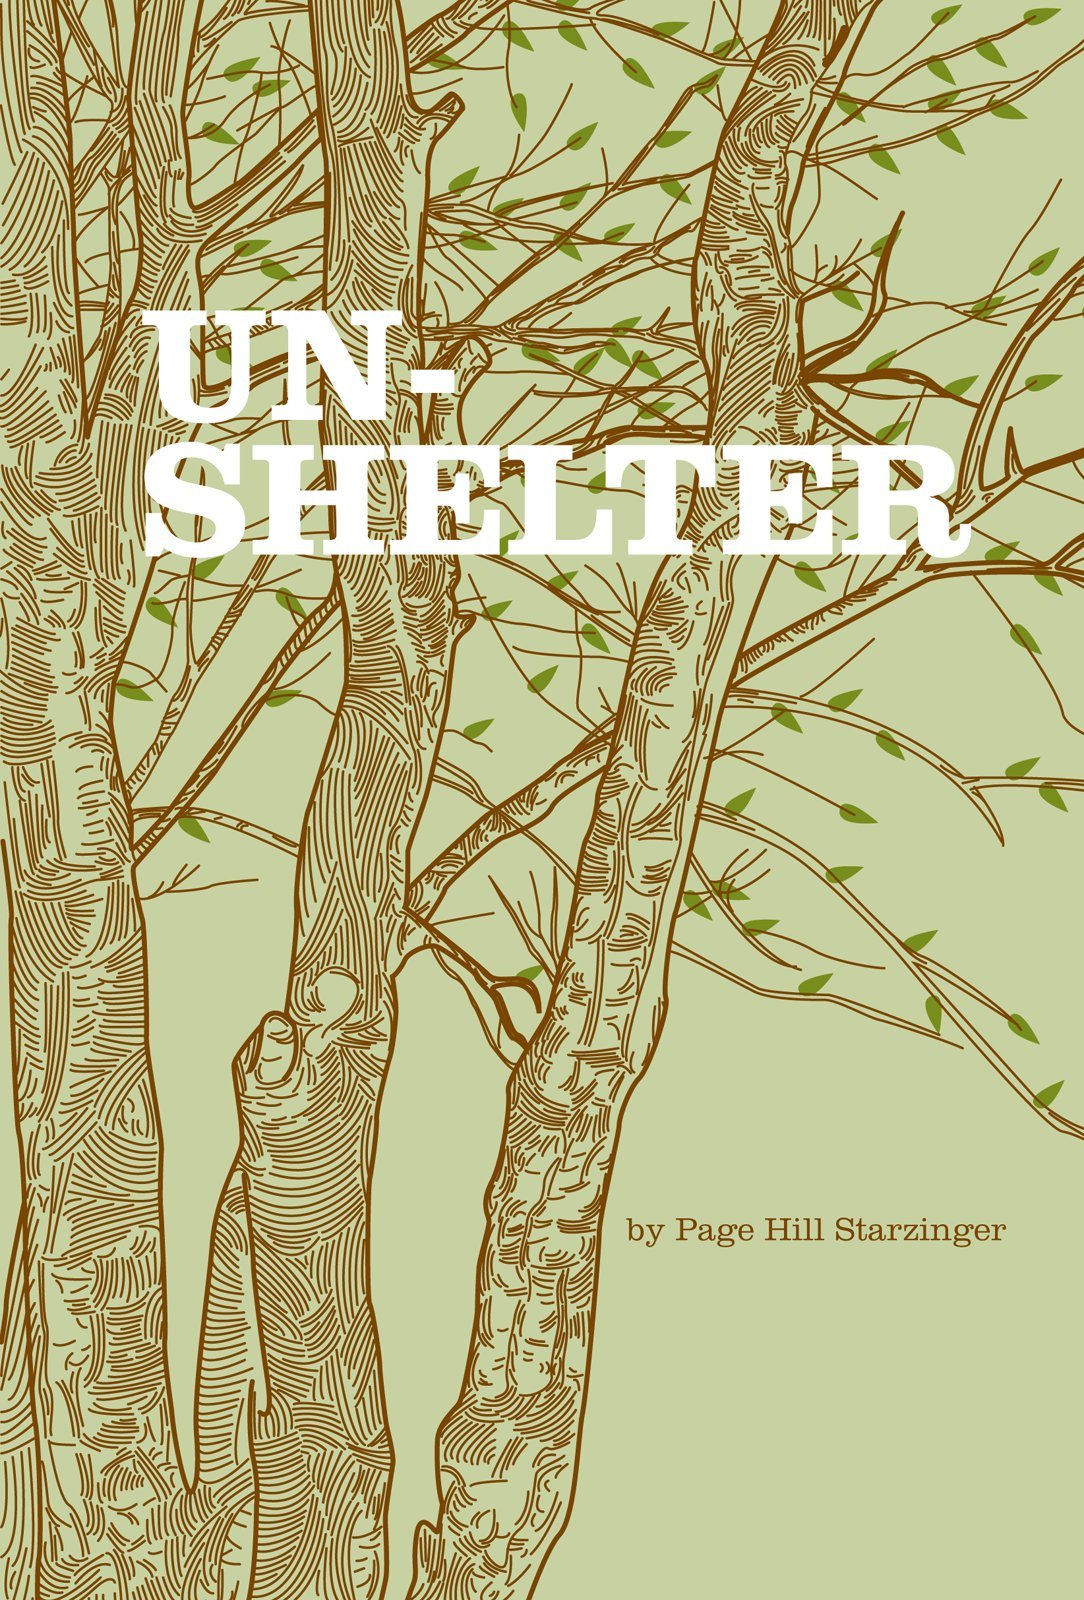 poetry chapbook template - unshelter by page hill starzinger noemi press